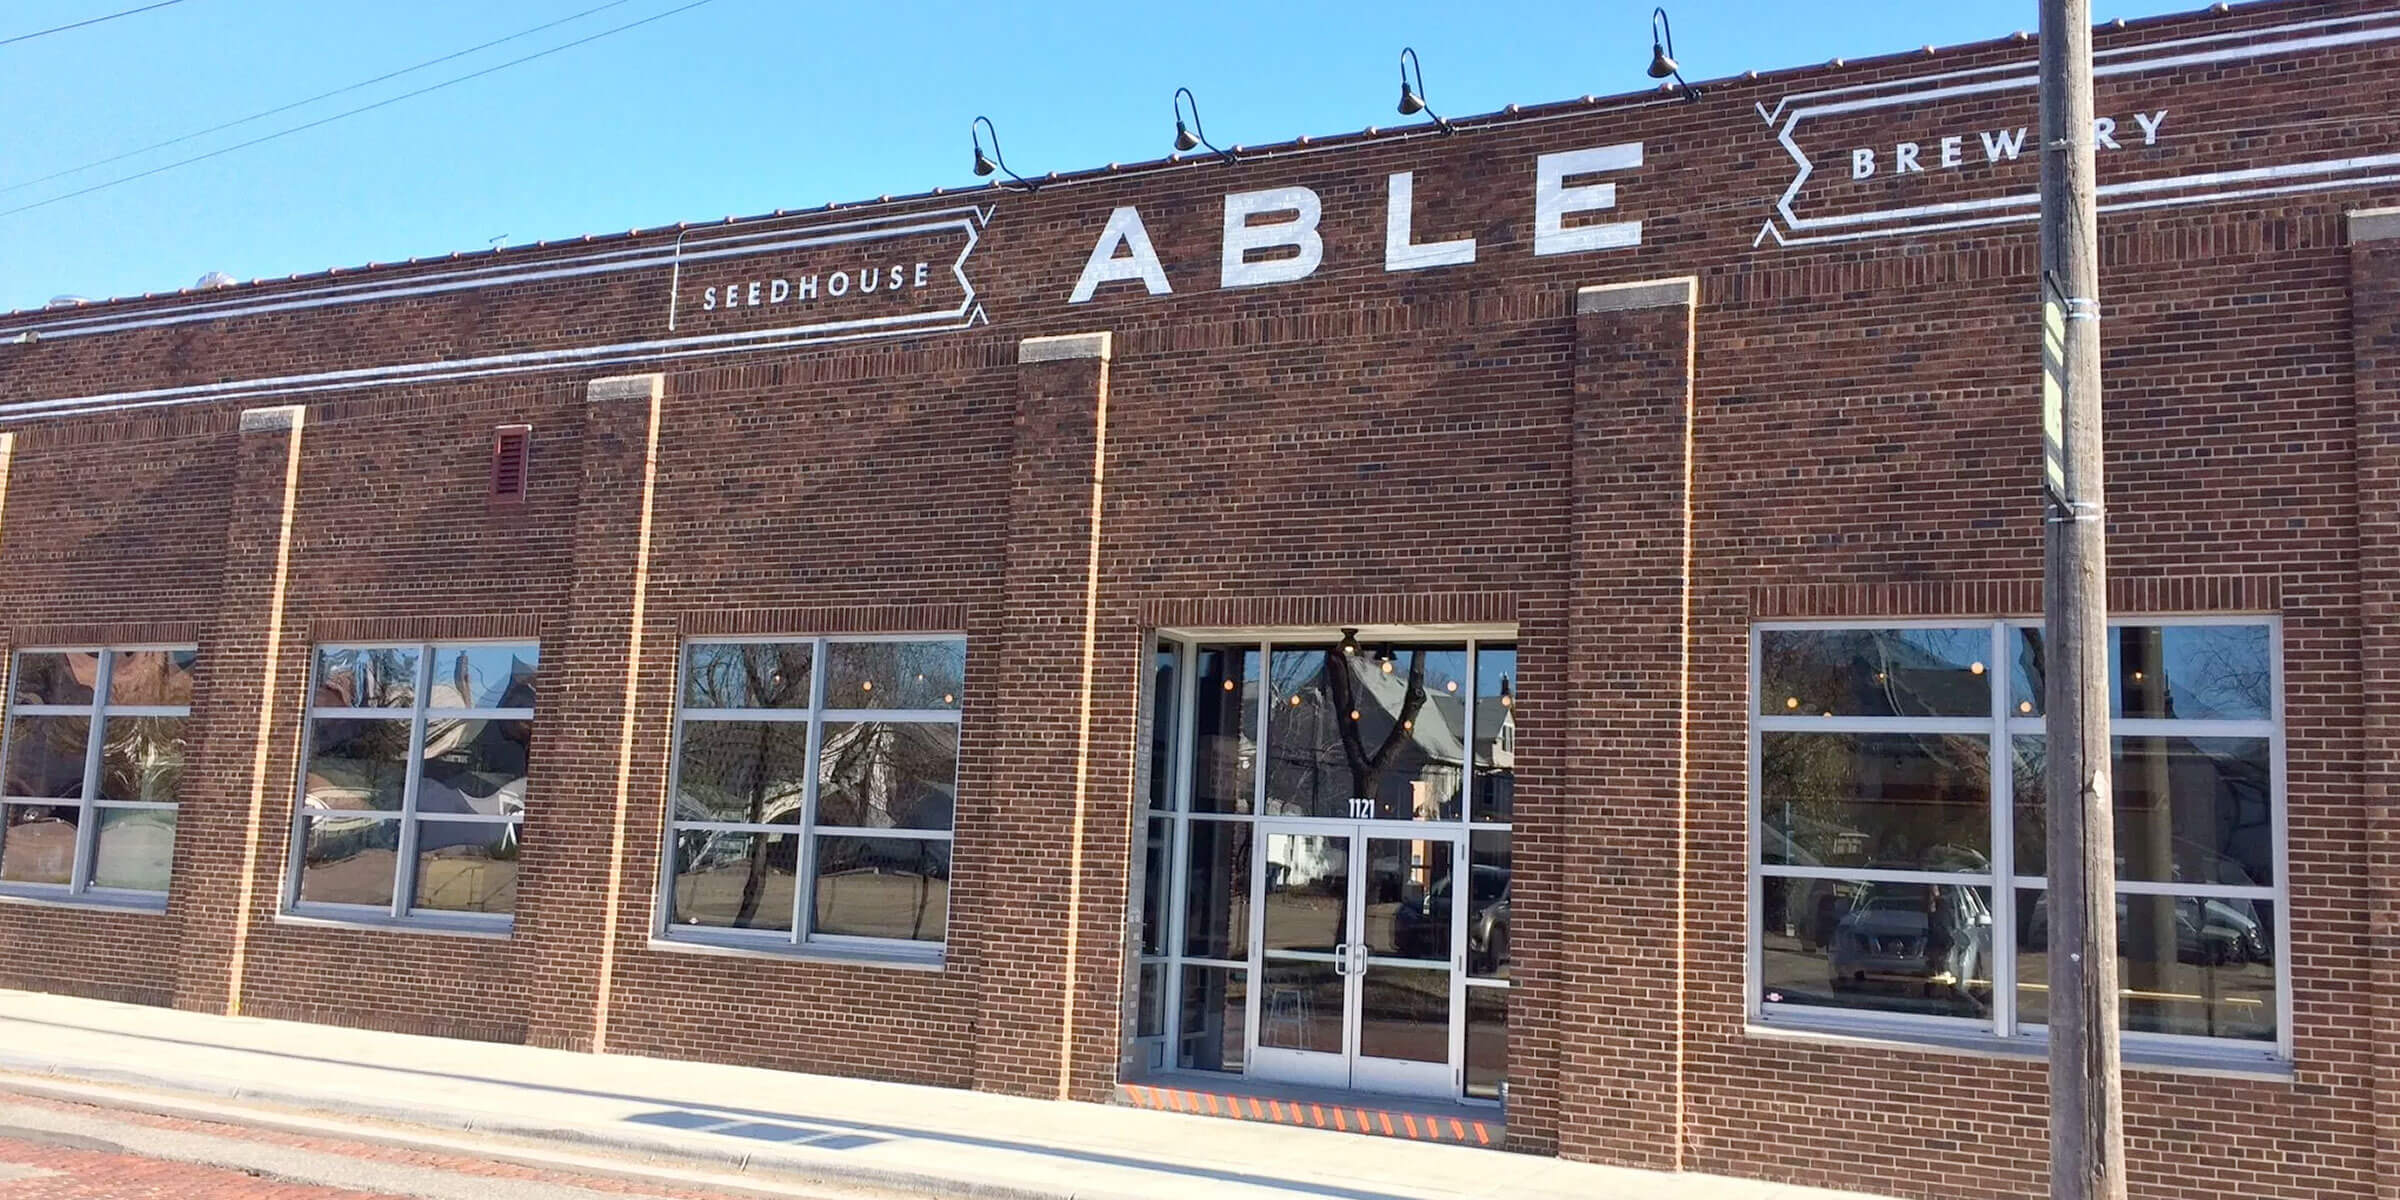 Outside the entrance to the Able Seedhouse + Brewery taproom in Minneapolis, Minnesota